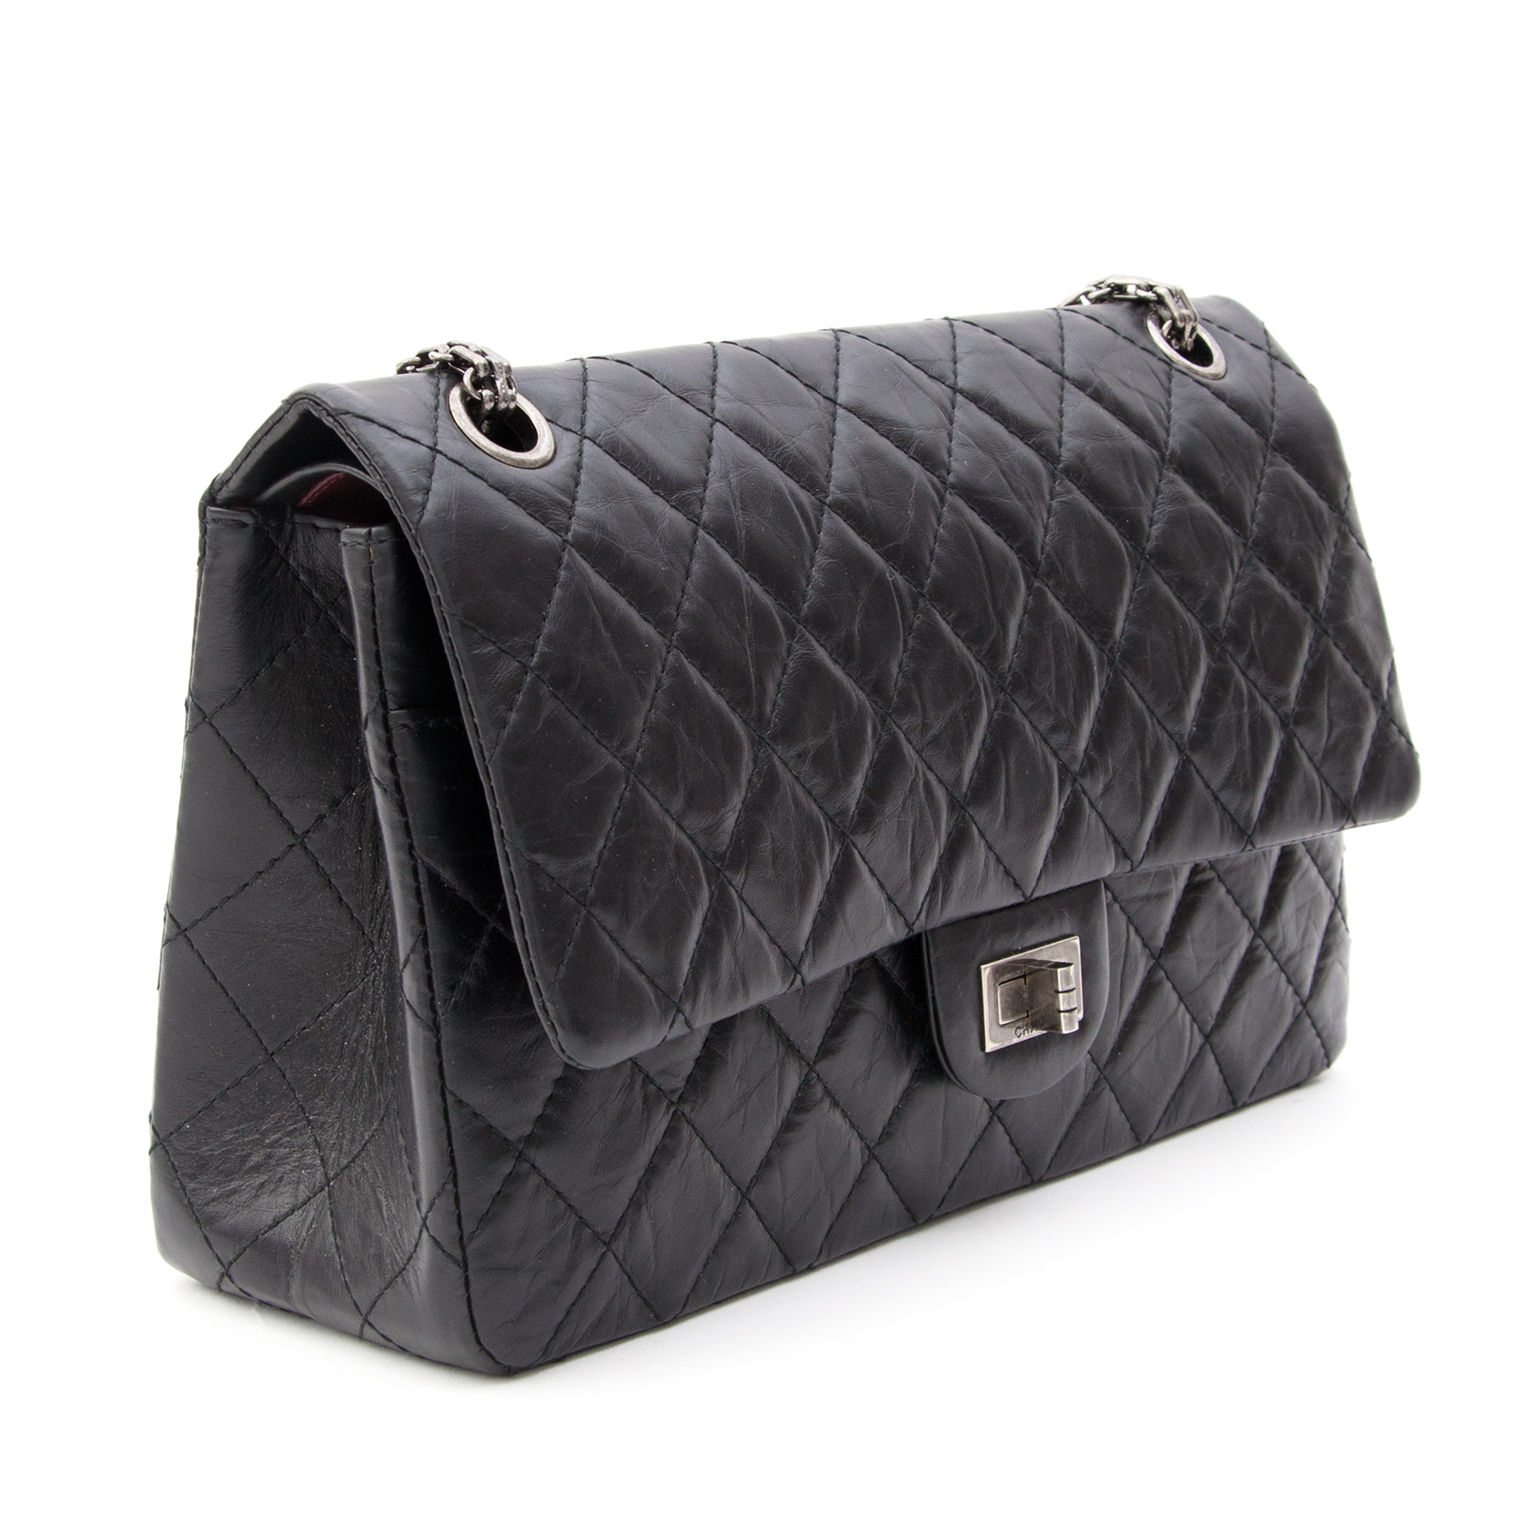 96623473fa3 ... Chanel black 2.55 Reissue - 226 Labellov provides a platform to buy and  sell preloved secondhand